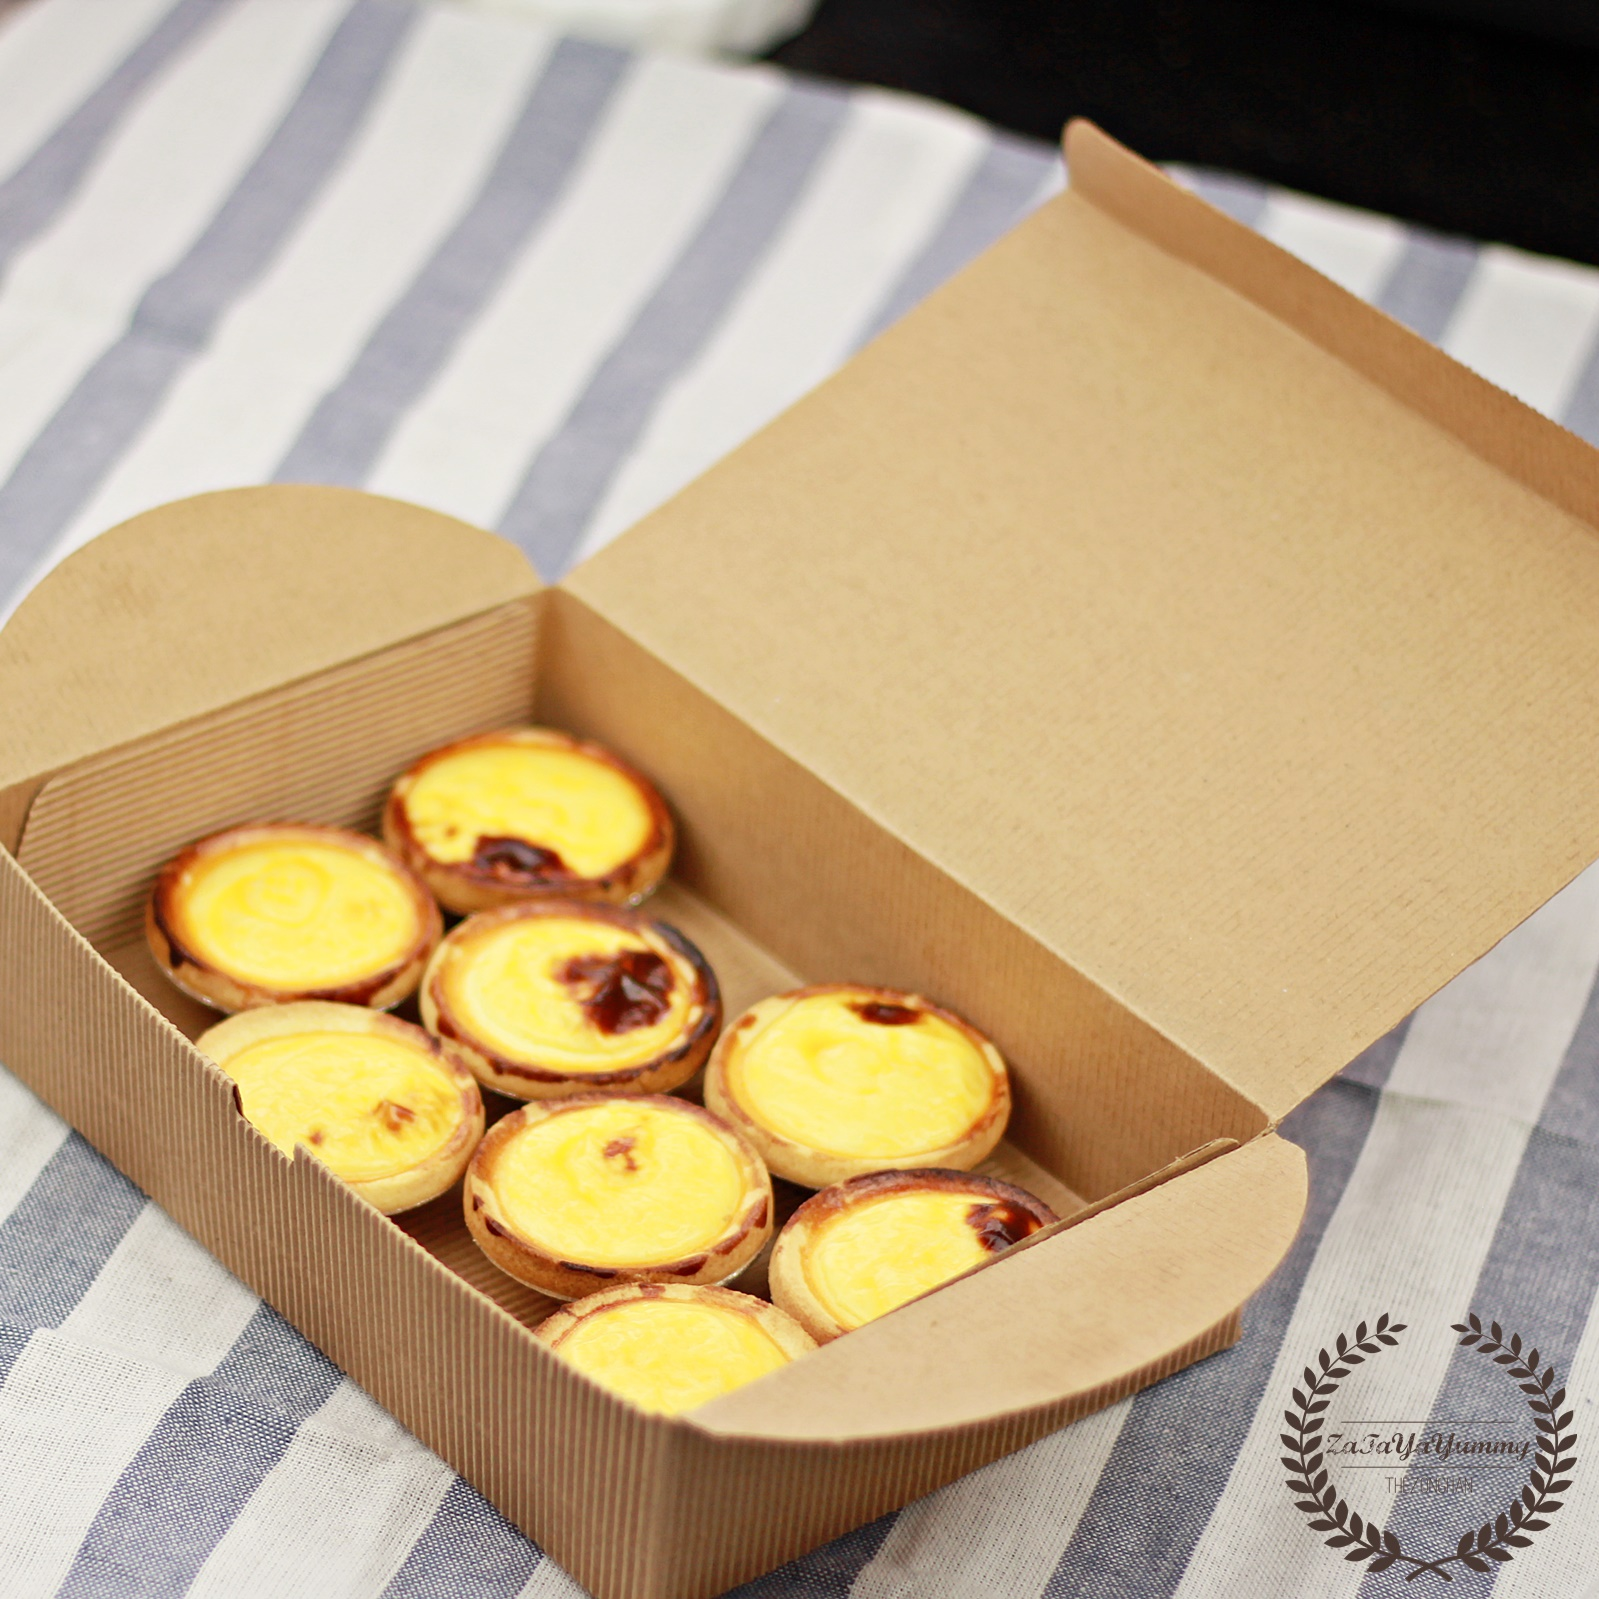 Cheese Tarts in box